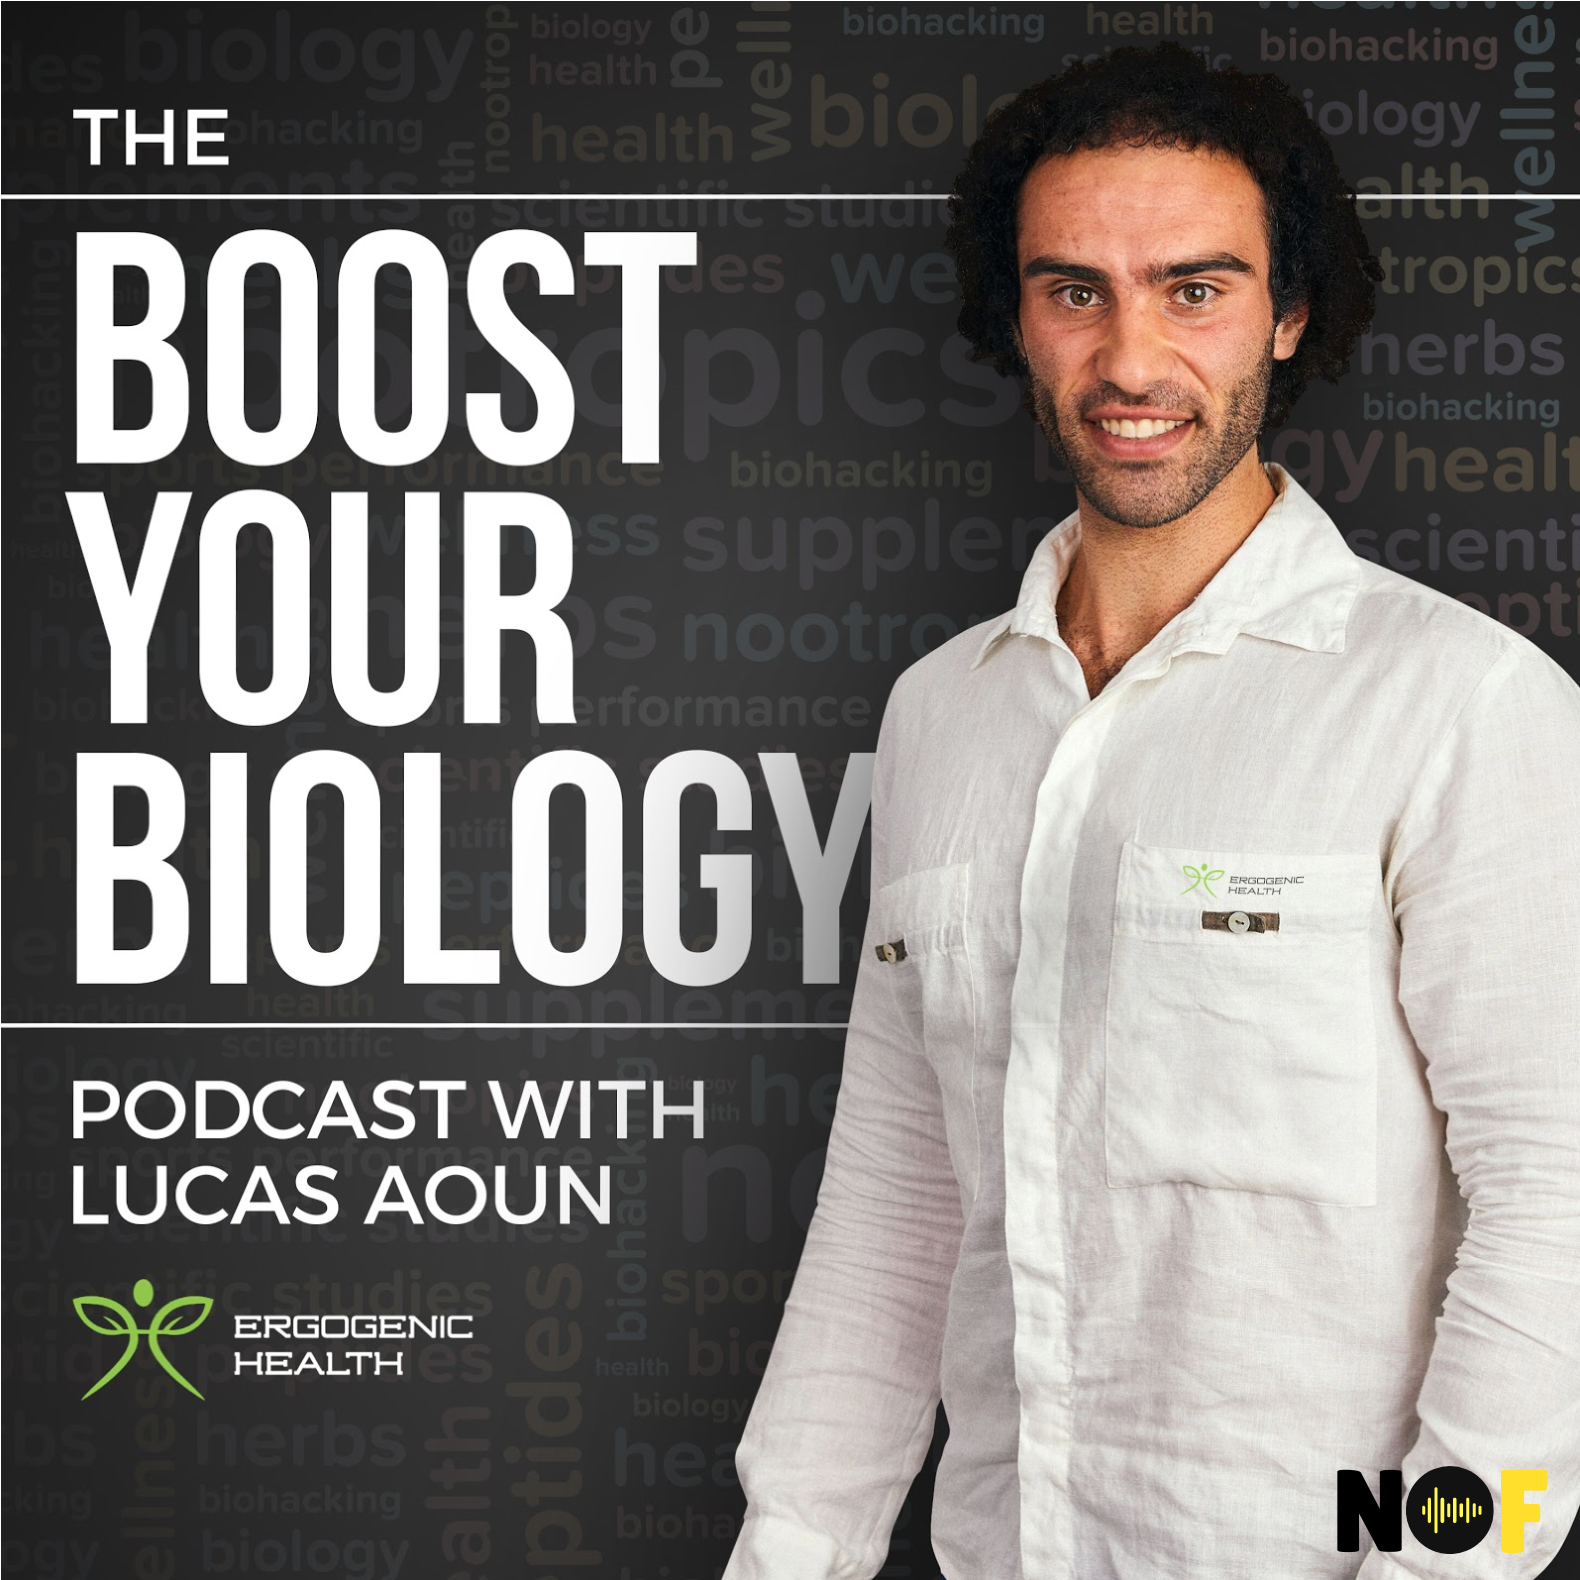 https://podcasts.apple.com/au/podcast/boost-your-biology-with-lucas-aoun/id1520485498